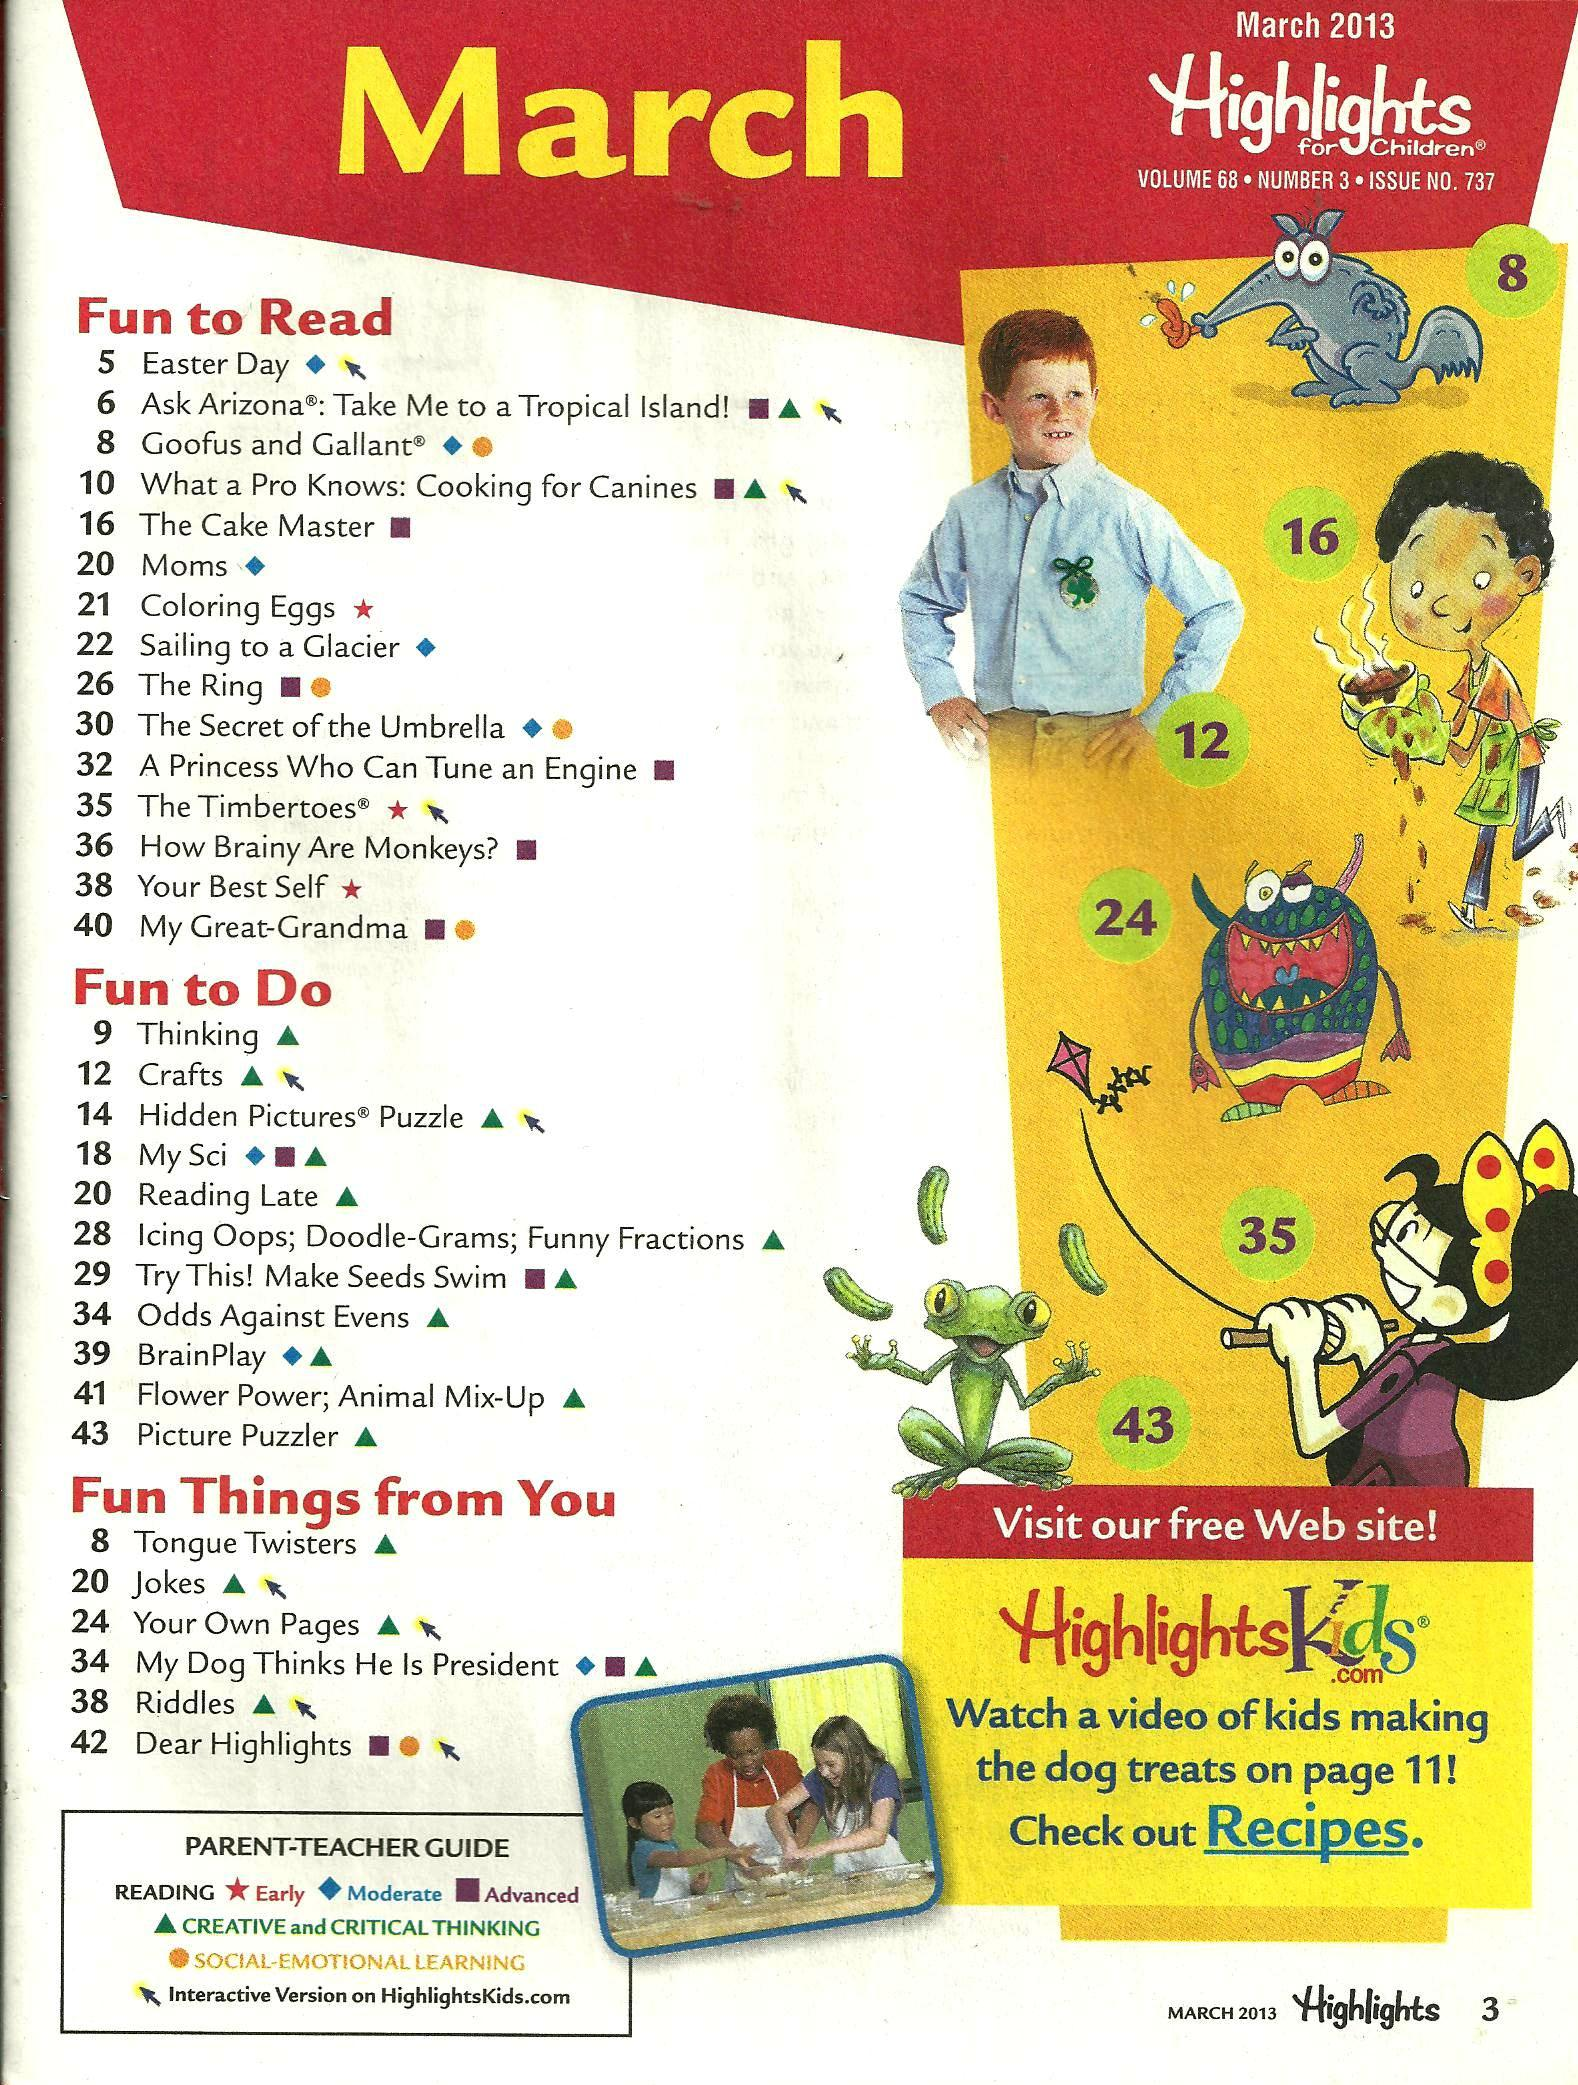 Highlights for Children March 2013 Volume 68 Number 3 Issue Number